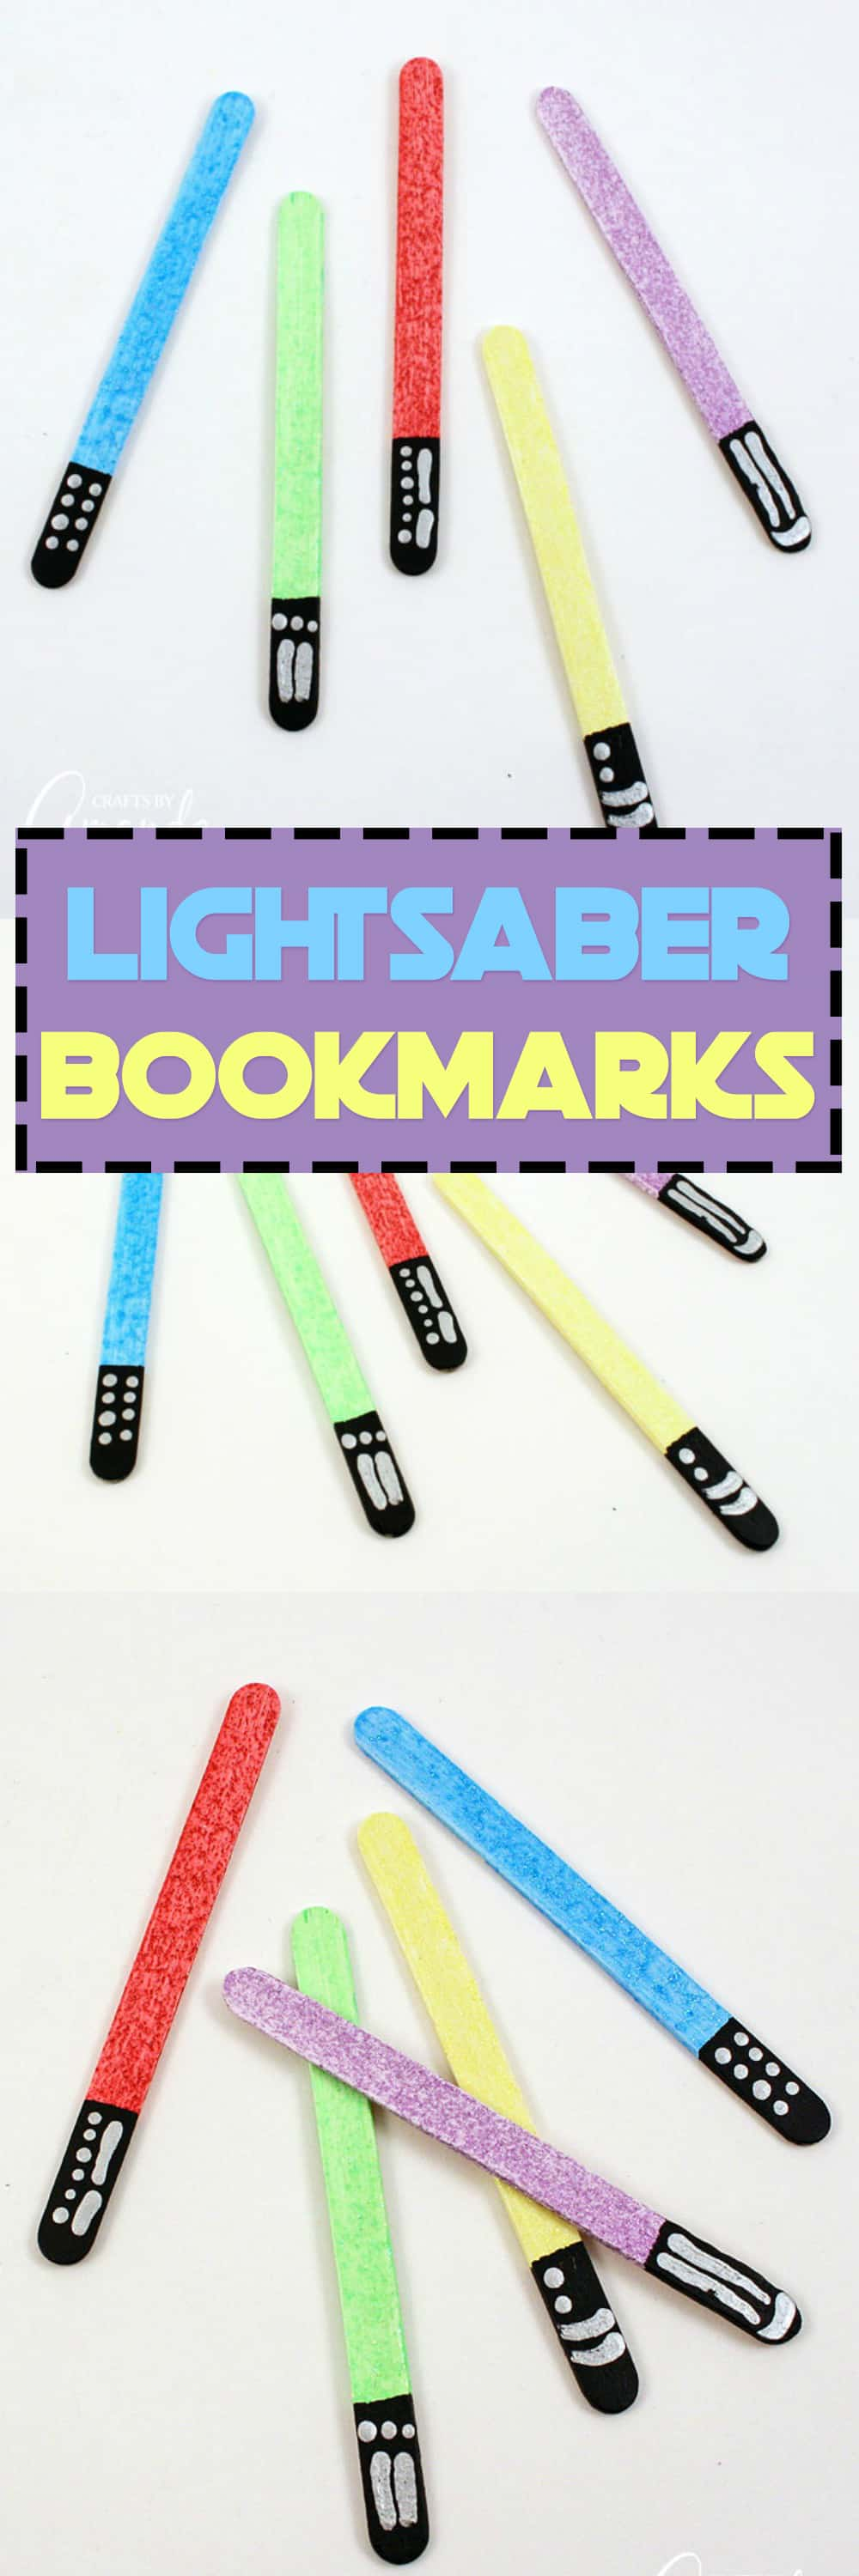 Keep your place in your favorite books by making glittery lightsabers in different colors! These lightsaber bookmarks are great for home or school.